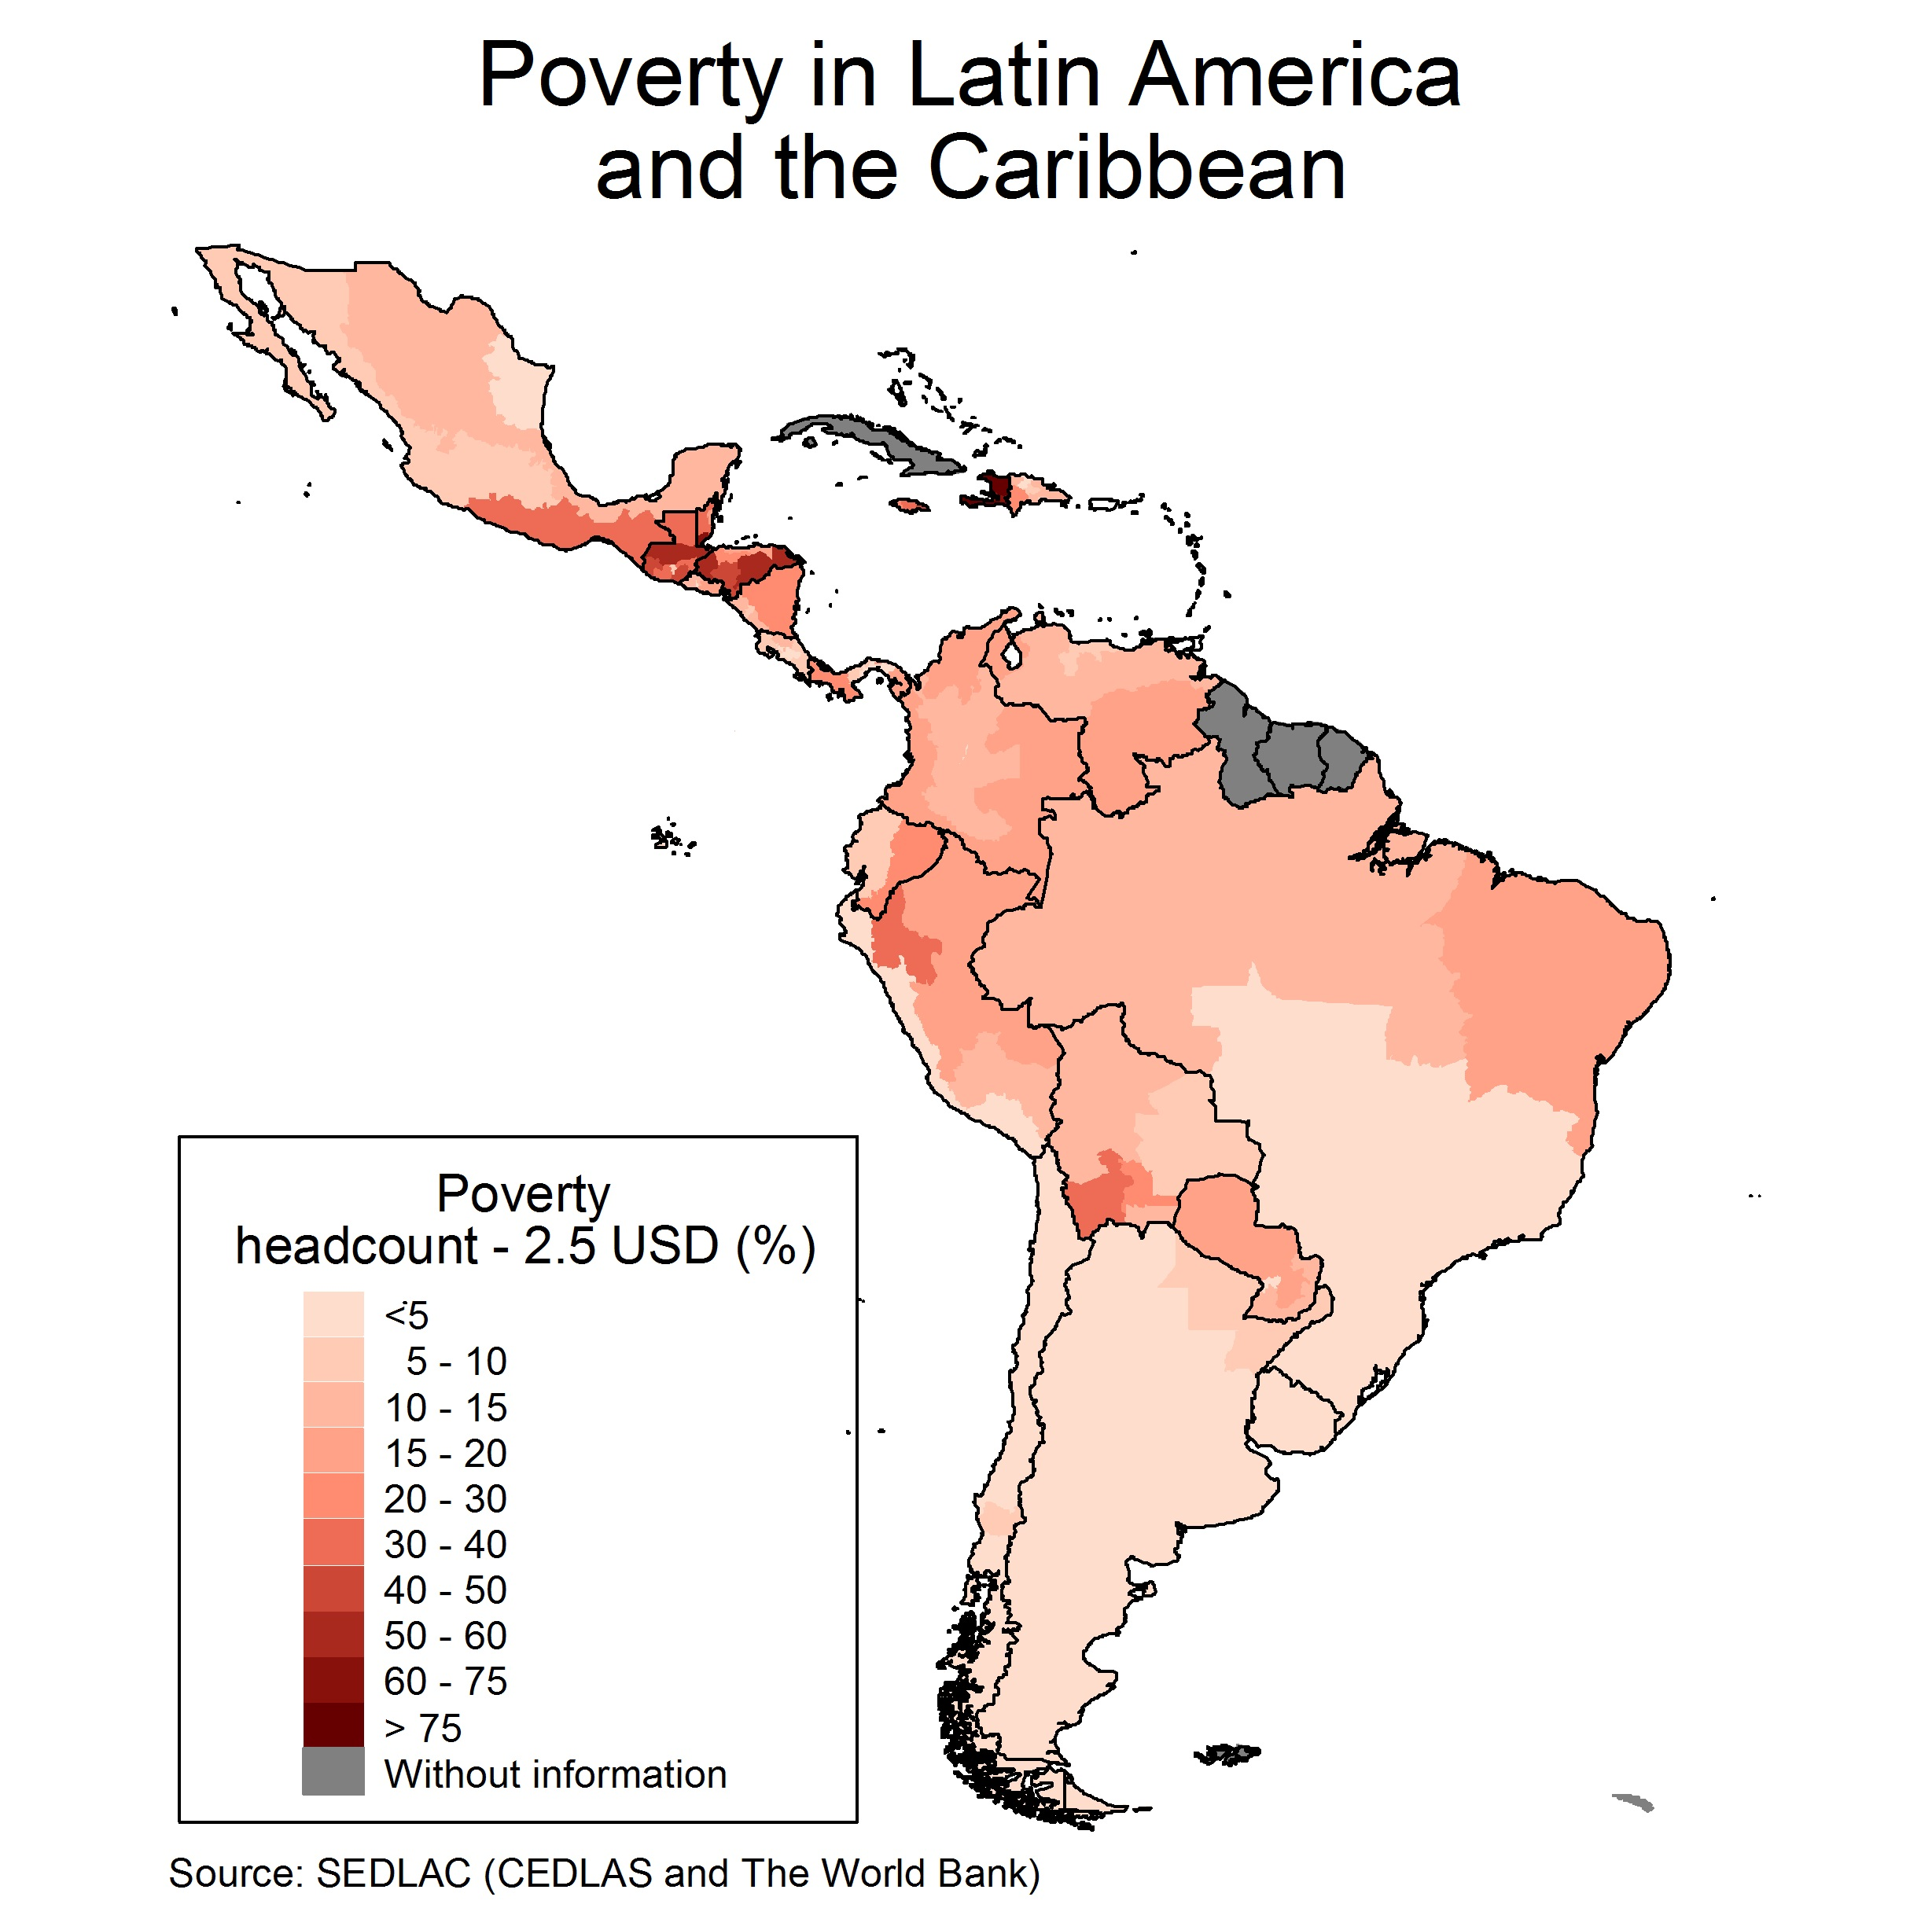 poverty in the caribbean Poverty reduction is the overarching objective in the caribbean development bank's strategic plan 2000-2004 and will remain a central objective in the strategic plan for 2005-2009.